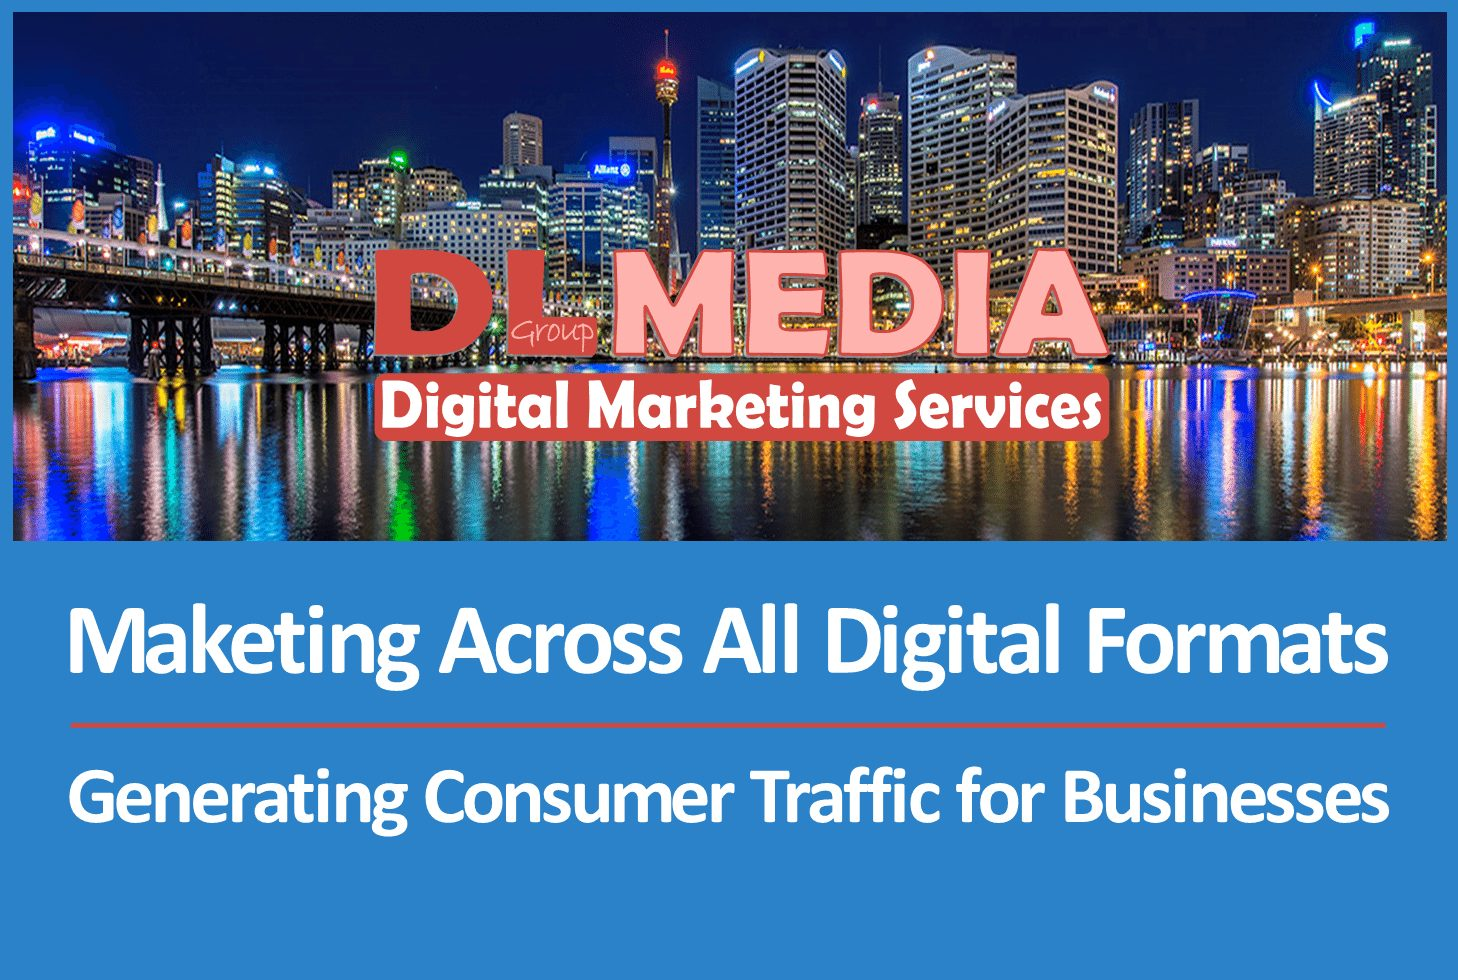 DL Group Media - Digital Marketing Services